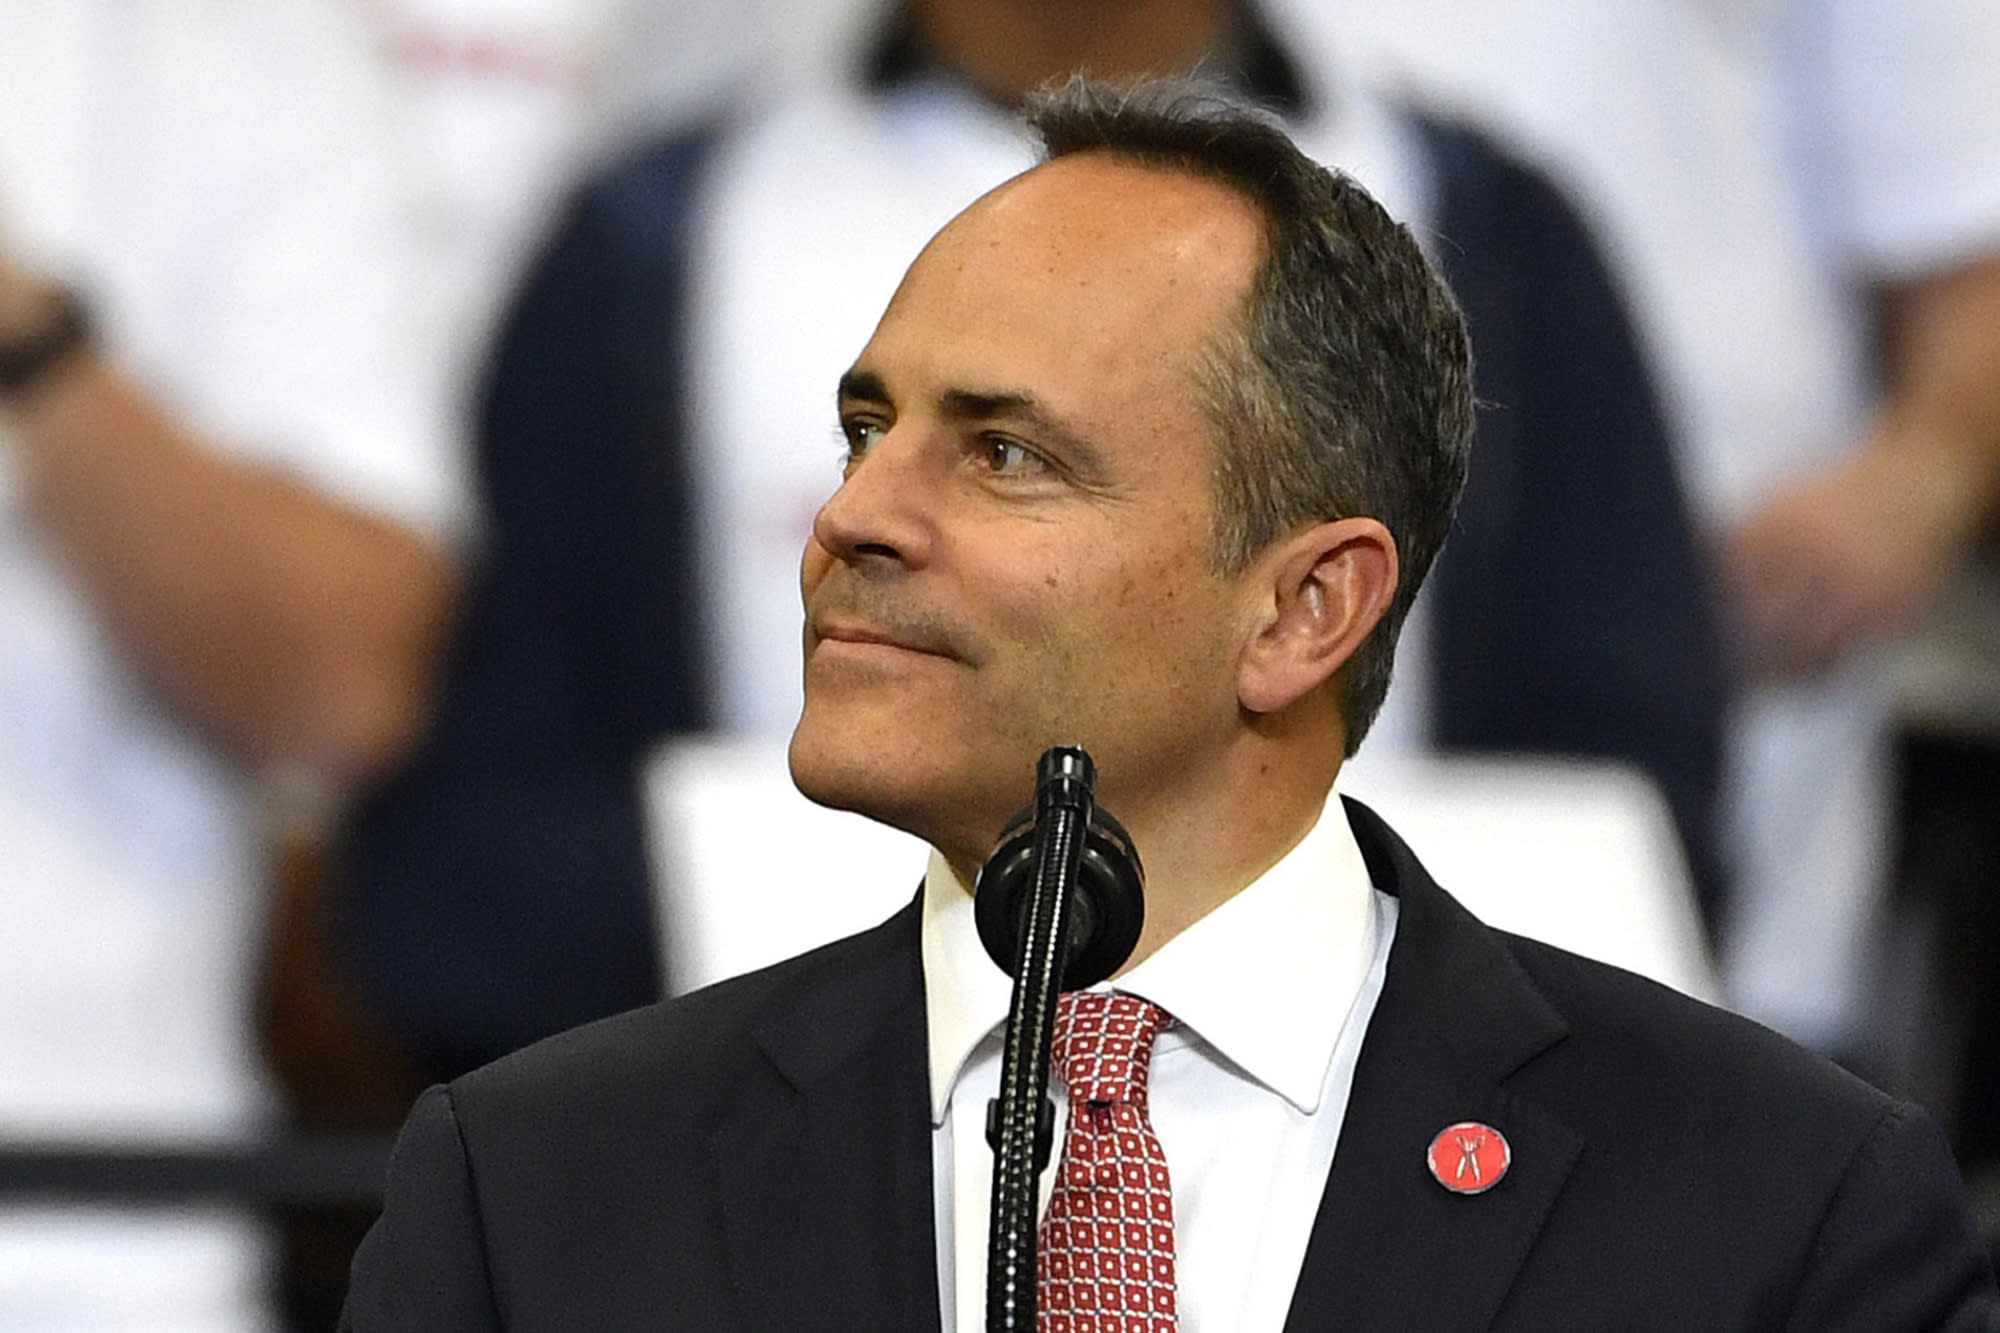 Ex-Kentucky governor Matt Bevin's pardon list sparks call for probe